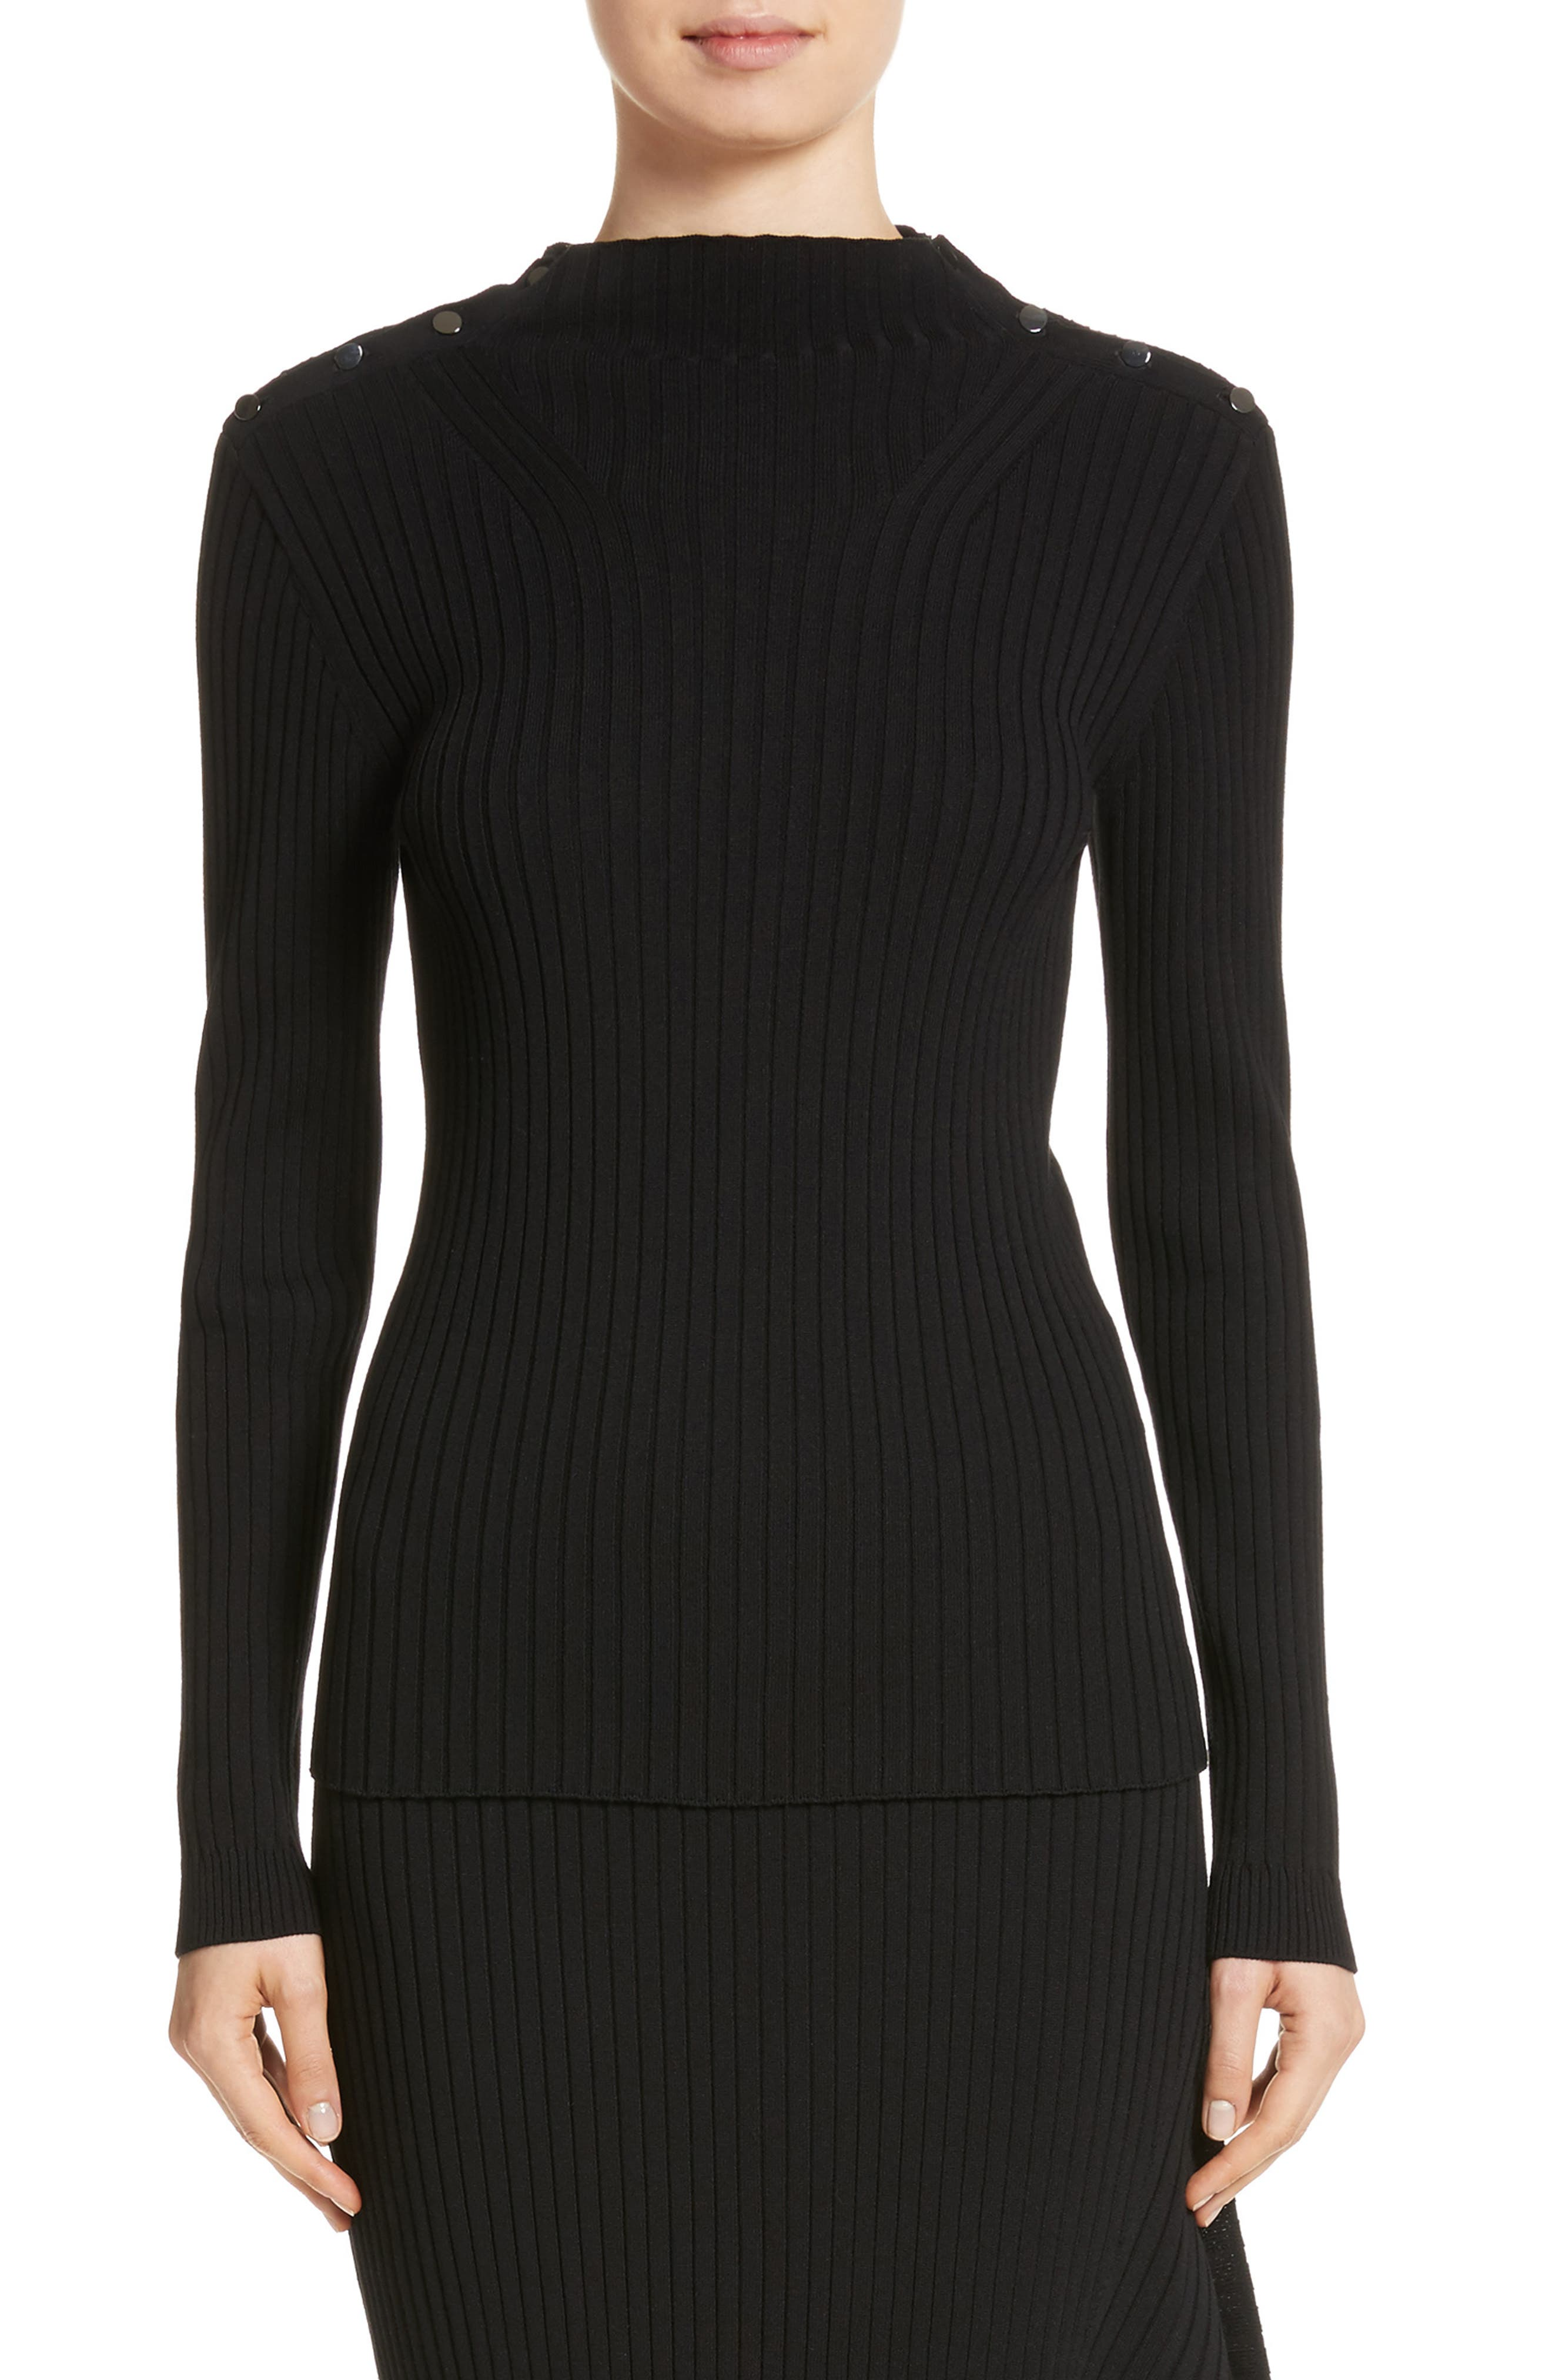 Flat Rib Knit Mock Neck Sweater,                         Main,                         color, 001